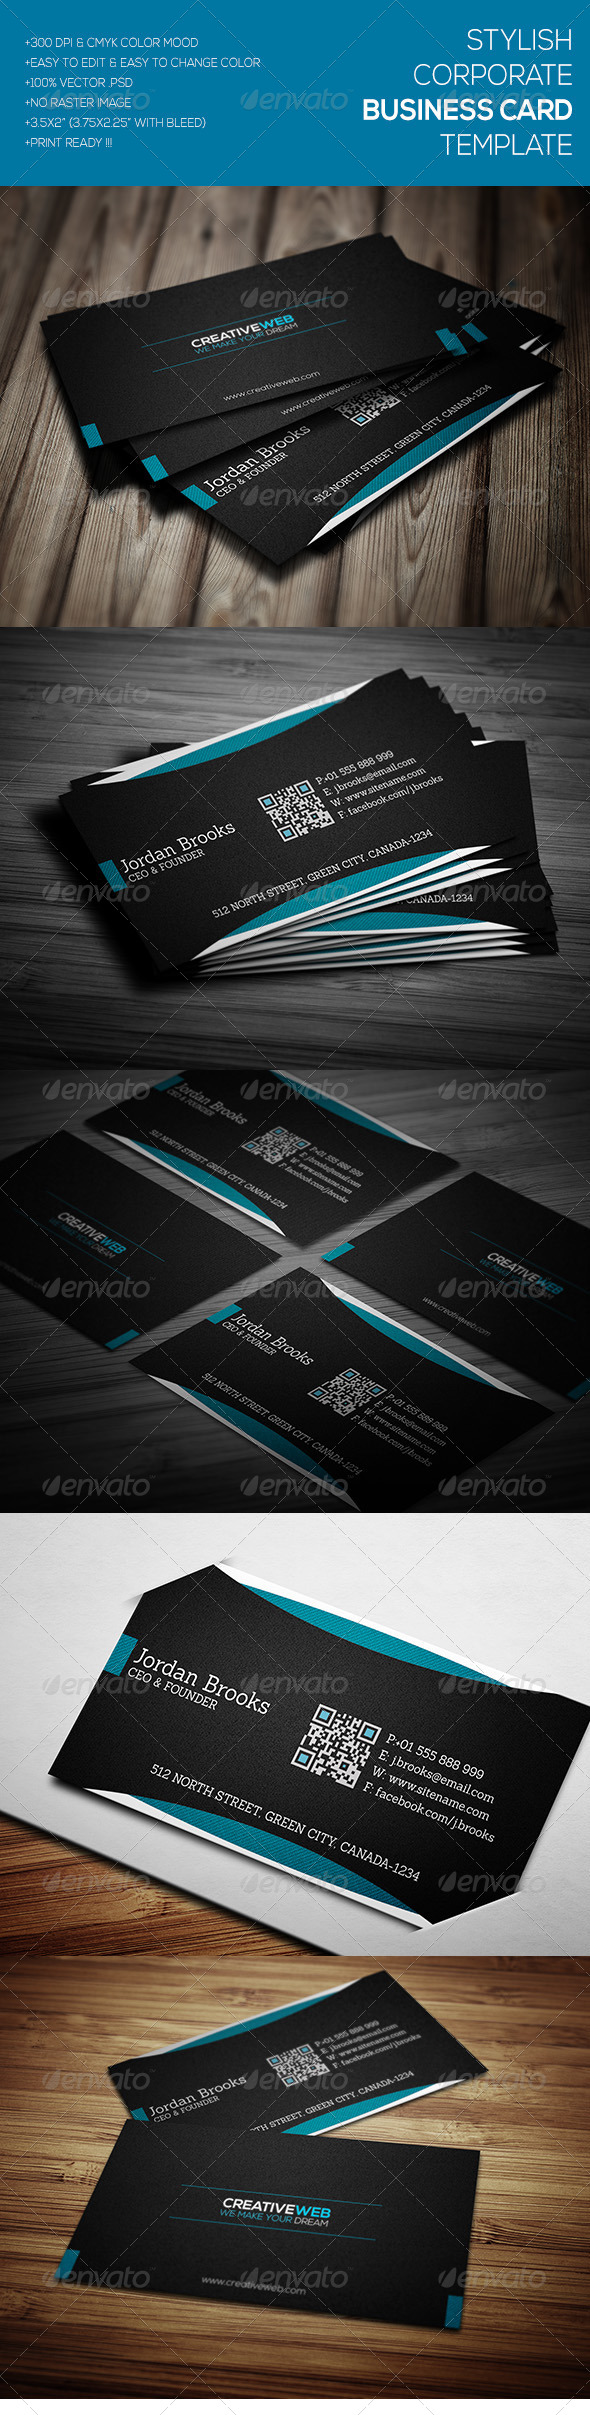 GraphicRiver Stylish Corporate Business Card Template 7106997